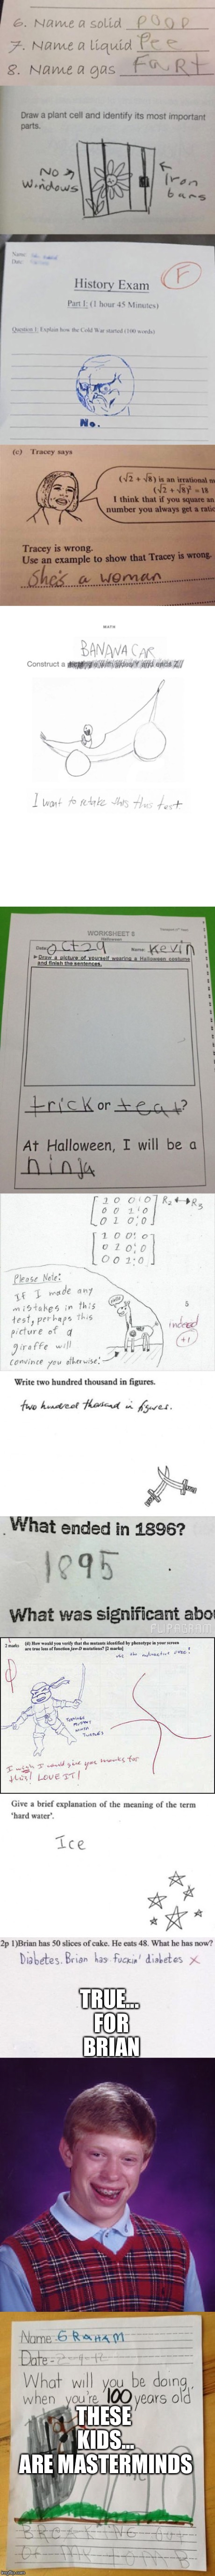 Kid test answers (Too funny) | TRUE... FOR BRIAN THESE KIDS... ARE MASTERMINDS | image tagged in omg,lol,oh my god,test,killed my self laughing,sick humor | made w/ Imgflip meme maker